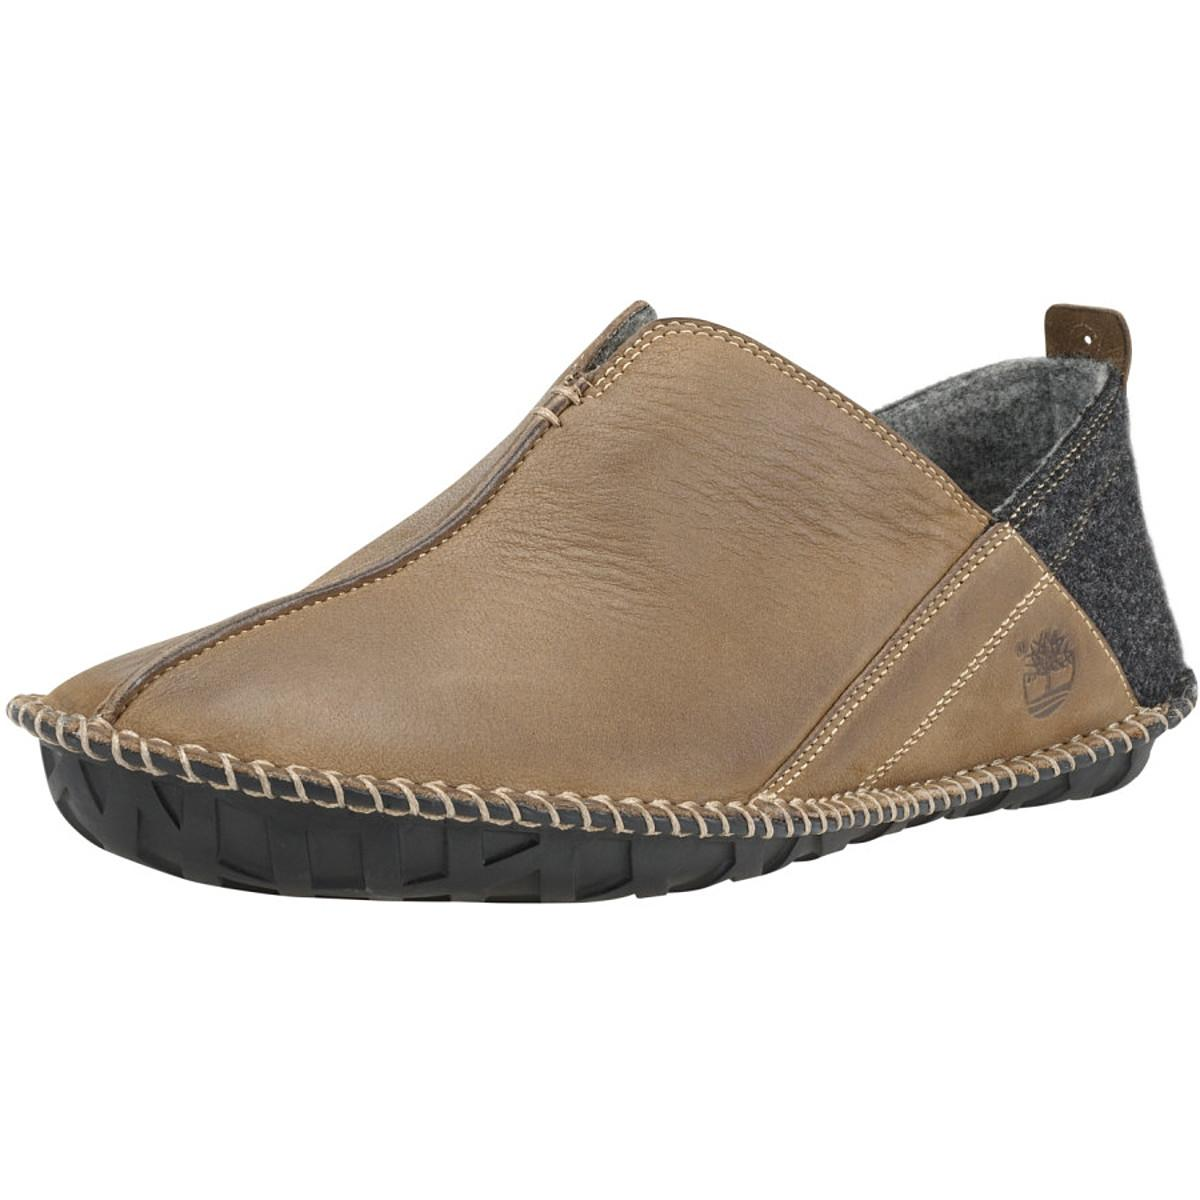 Timberland Earthkeepers Lounger Leather Slip-On Shoe - Men's